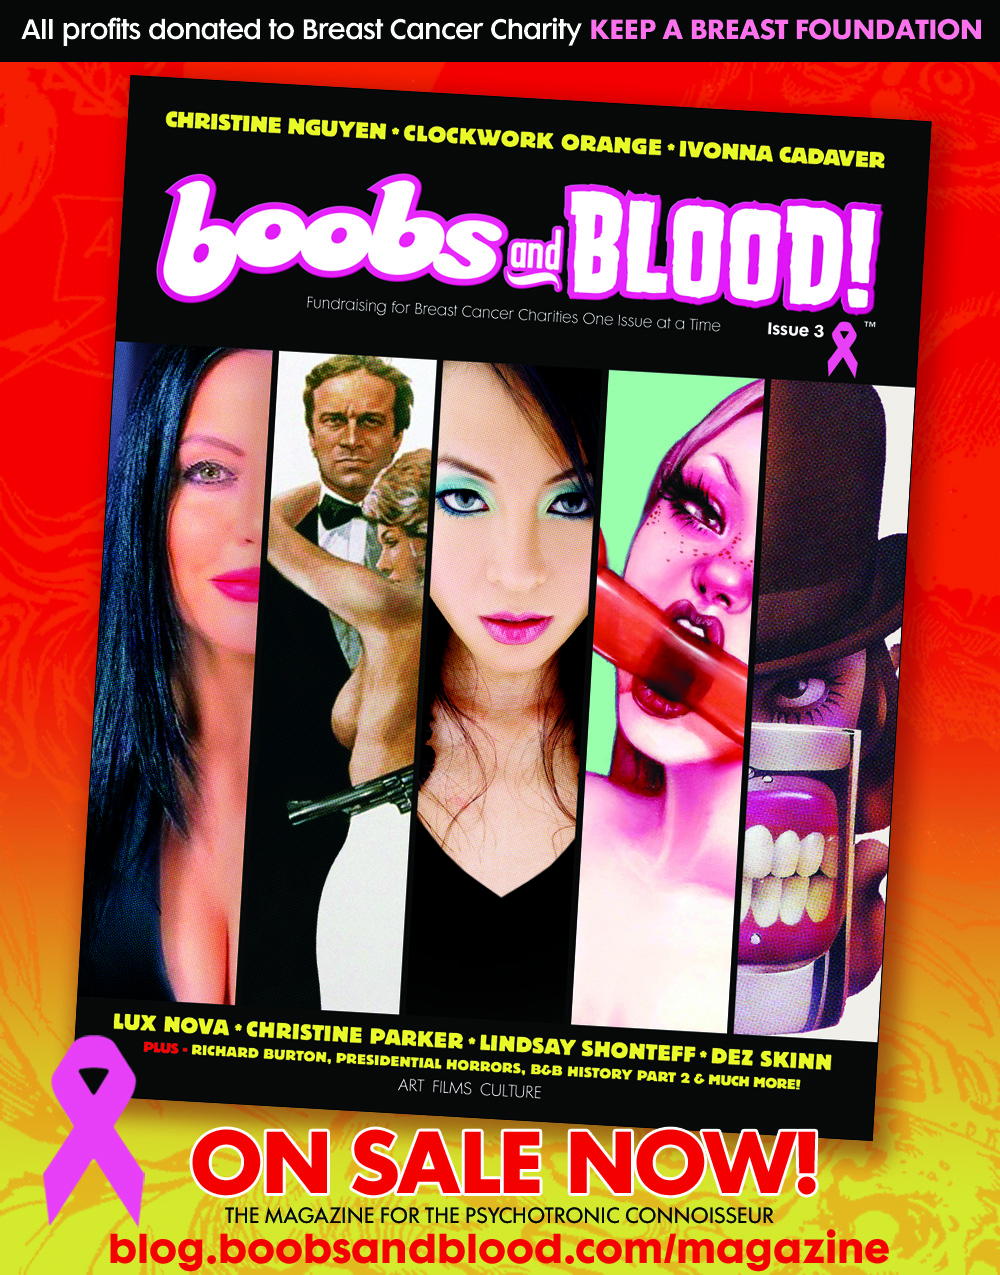 BOOBS & BLOOD Magazine Fundraising for Breast Cancer Charities One Issue at a Time